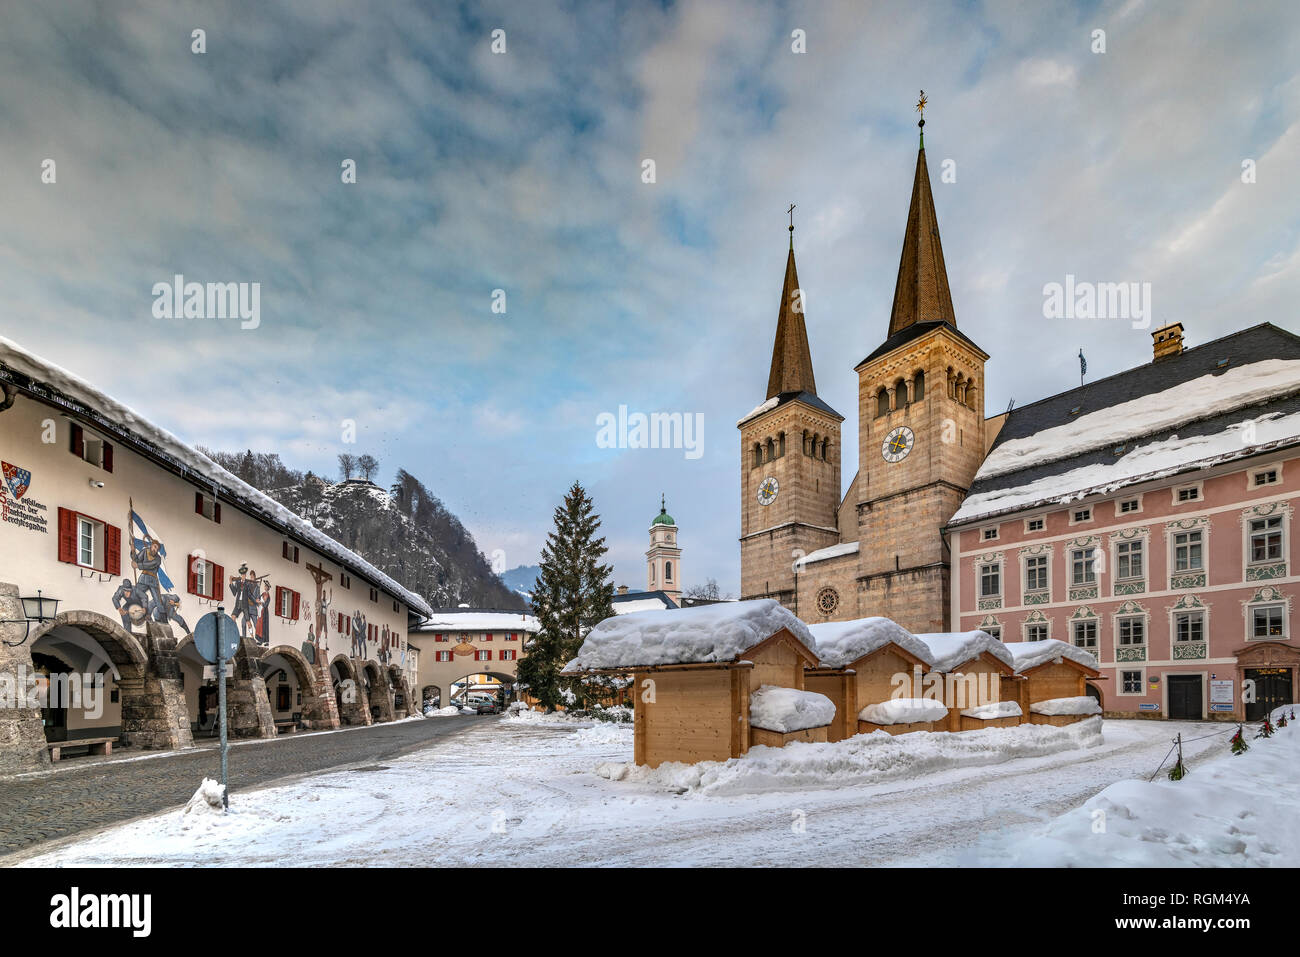 Collegiate Church of St Peter and John the Baptist, Schlossplatz square, Berchtesgaden, Bavaria, Germany - Stock Image